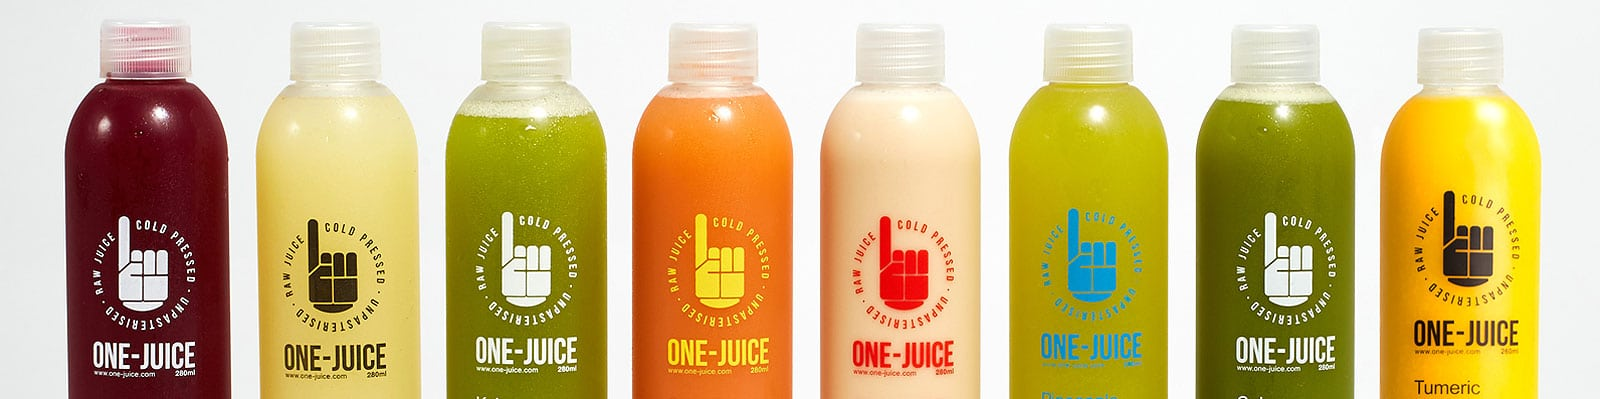 all_juices_bottles